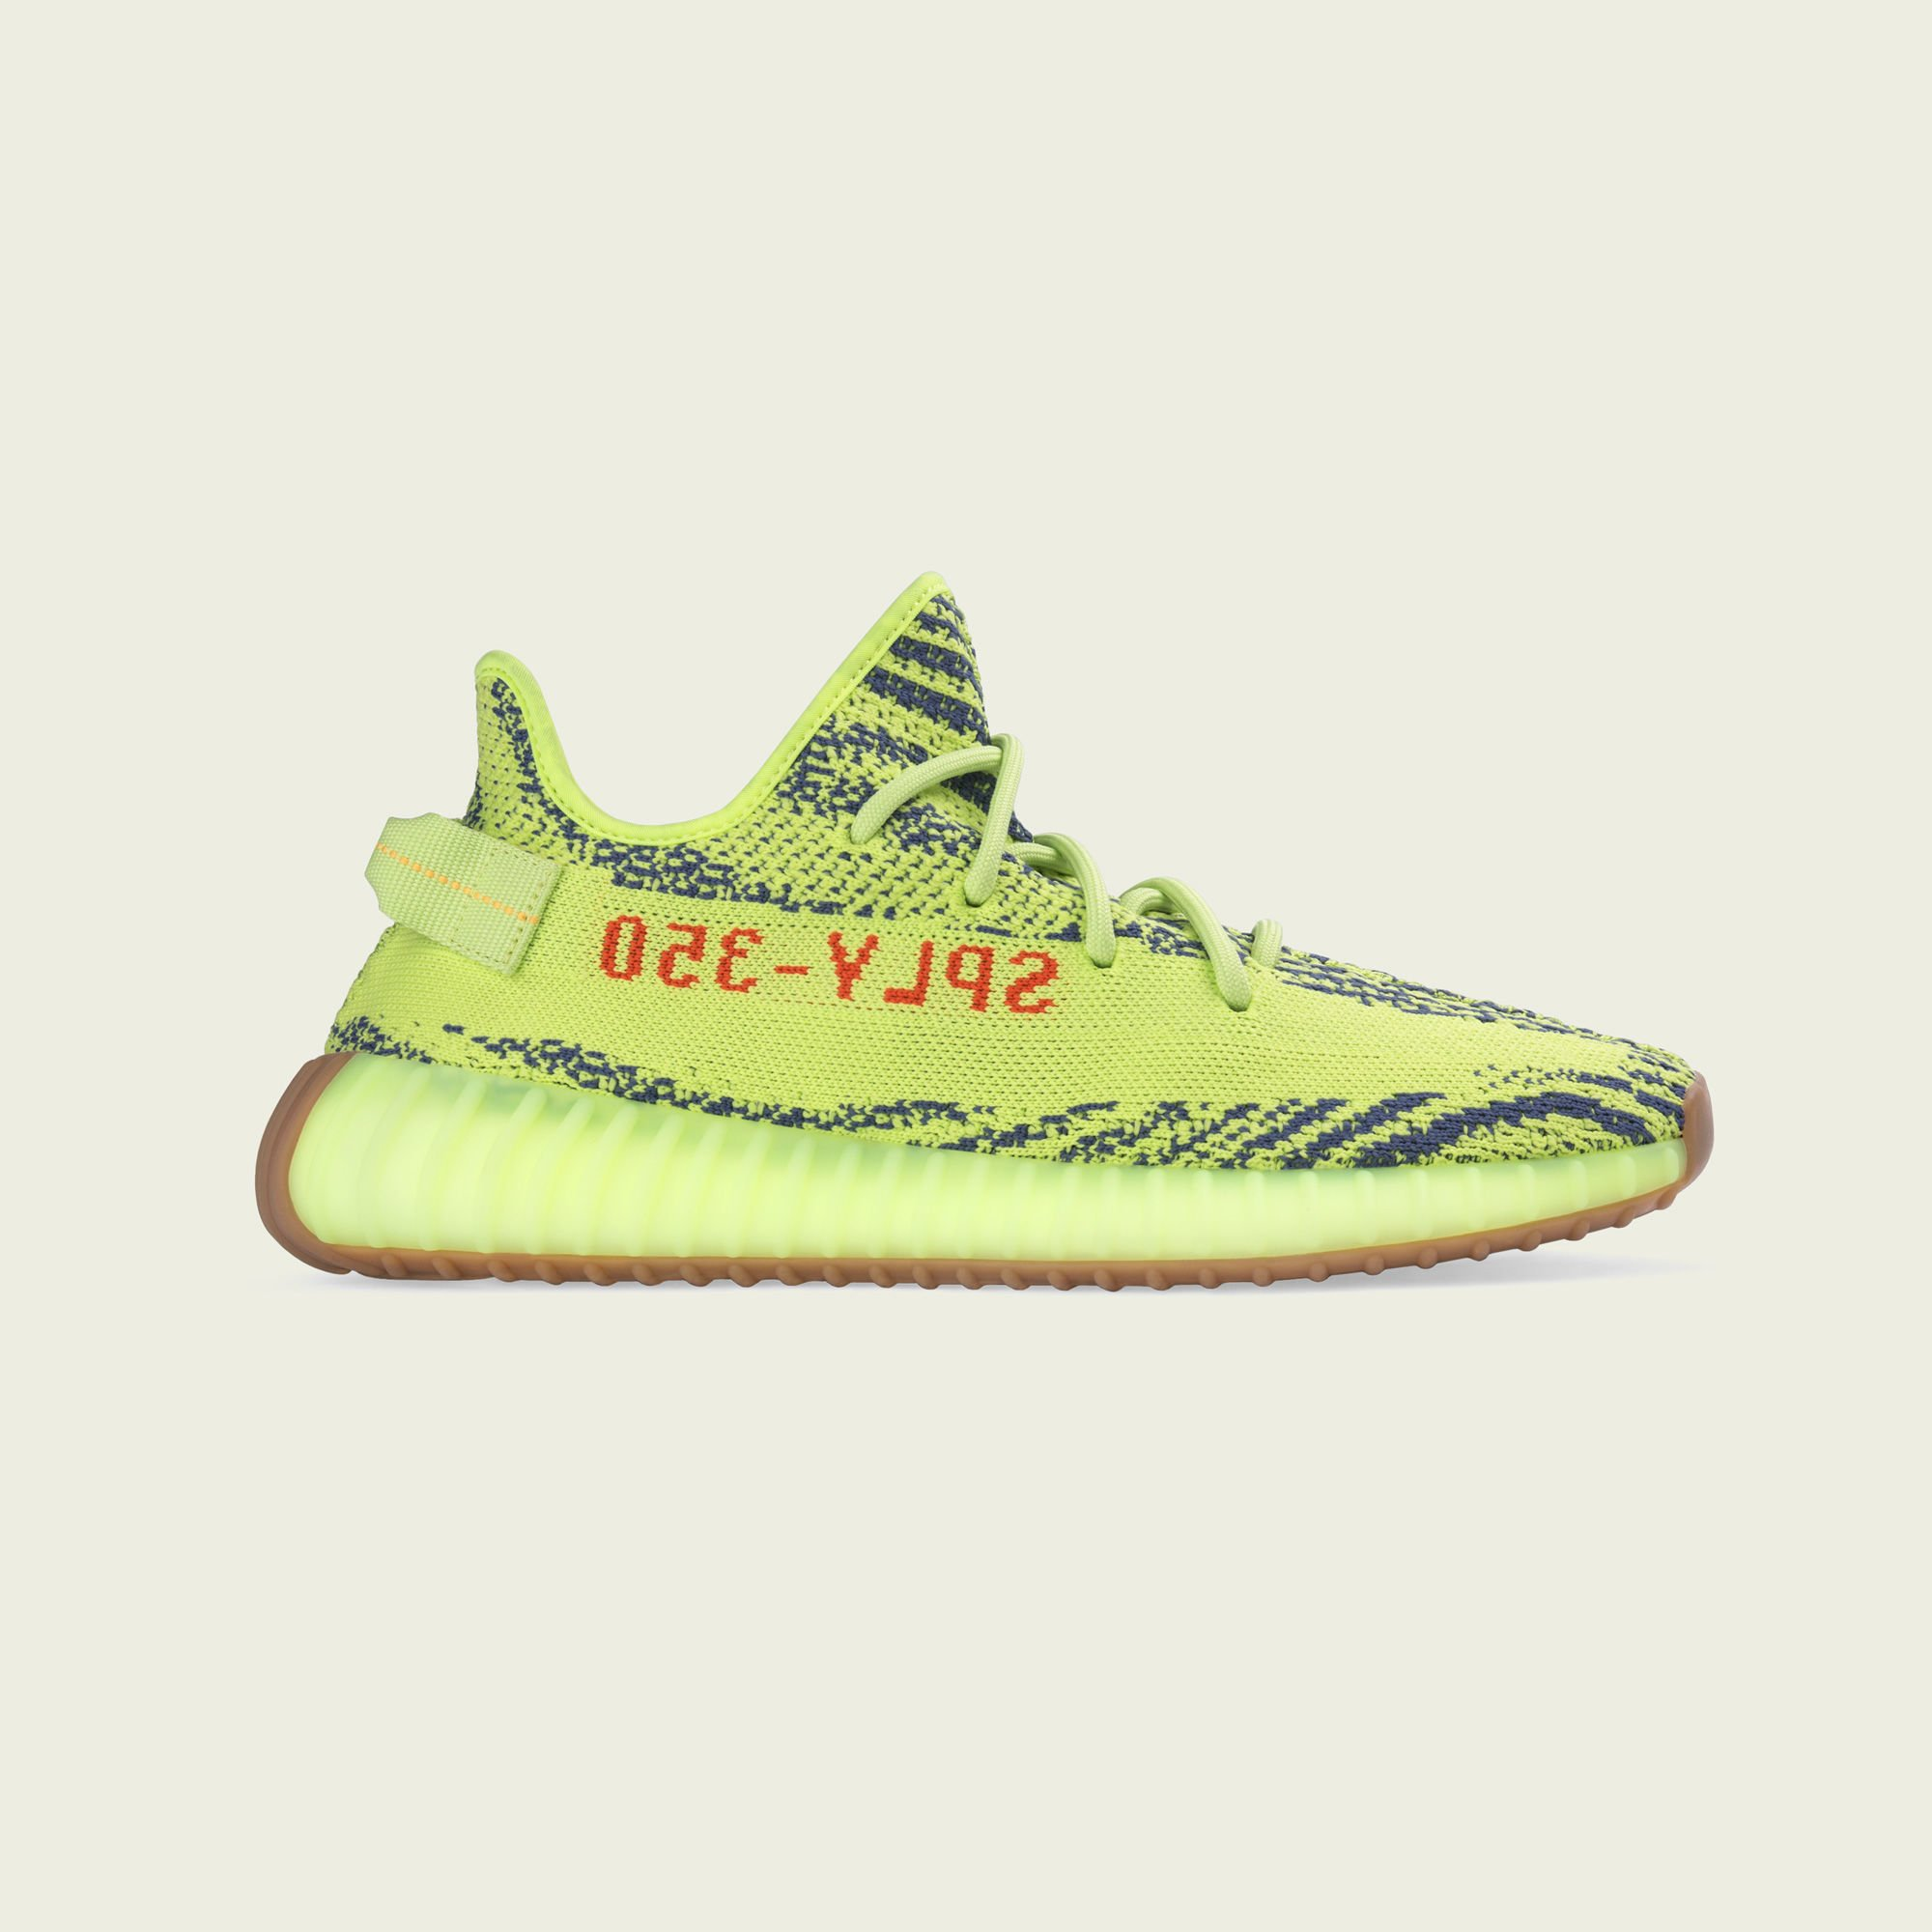 adidas Yeezy Boost 350 V2 Semi Frozen Yellow (B37572)